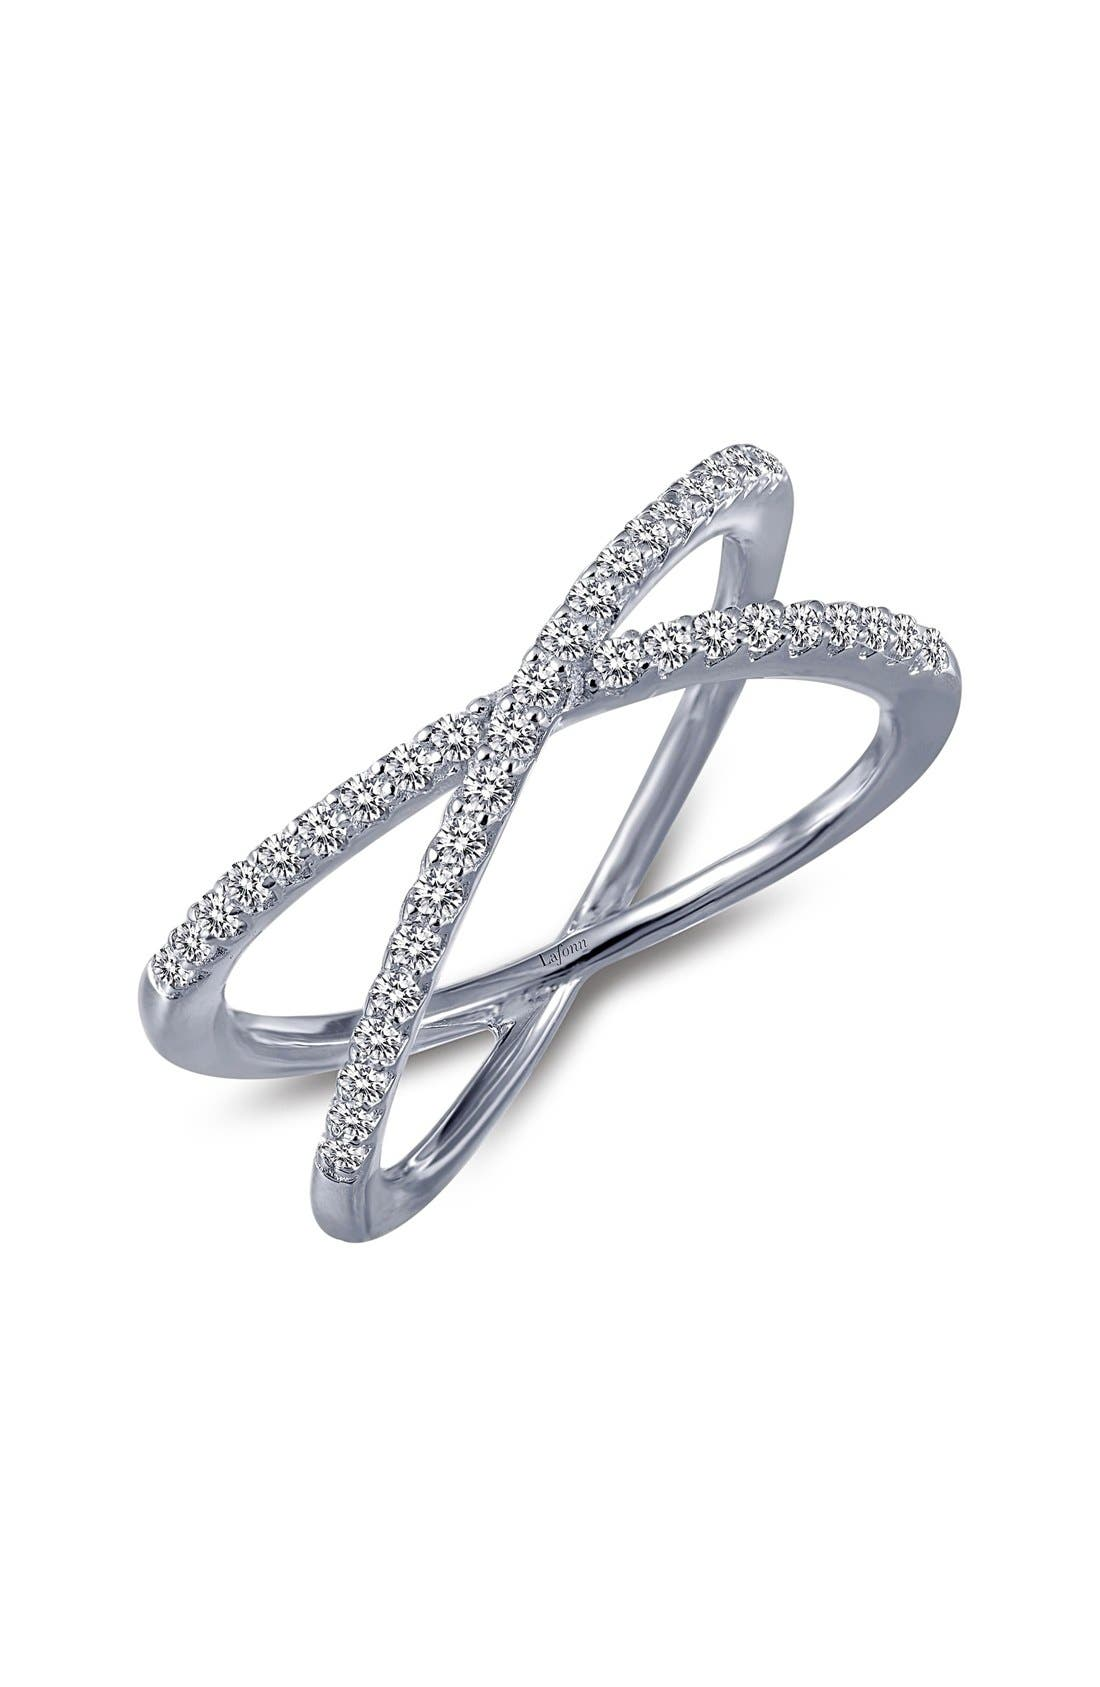 Slender bands encrusted with 39 shimmering simulated diamonds crisscross to create an ultra-modern, stackable ring with a bit of cool-girl edge. Style Name: Lafonn Classic Crossover Ring. Style Number: 5304874. Available in stores.